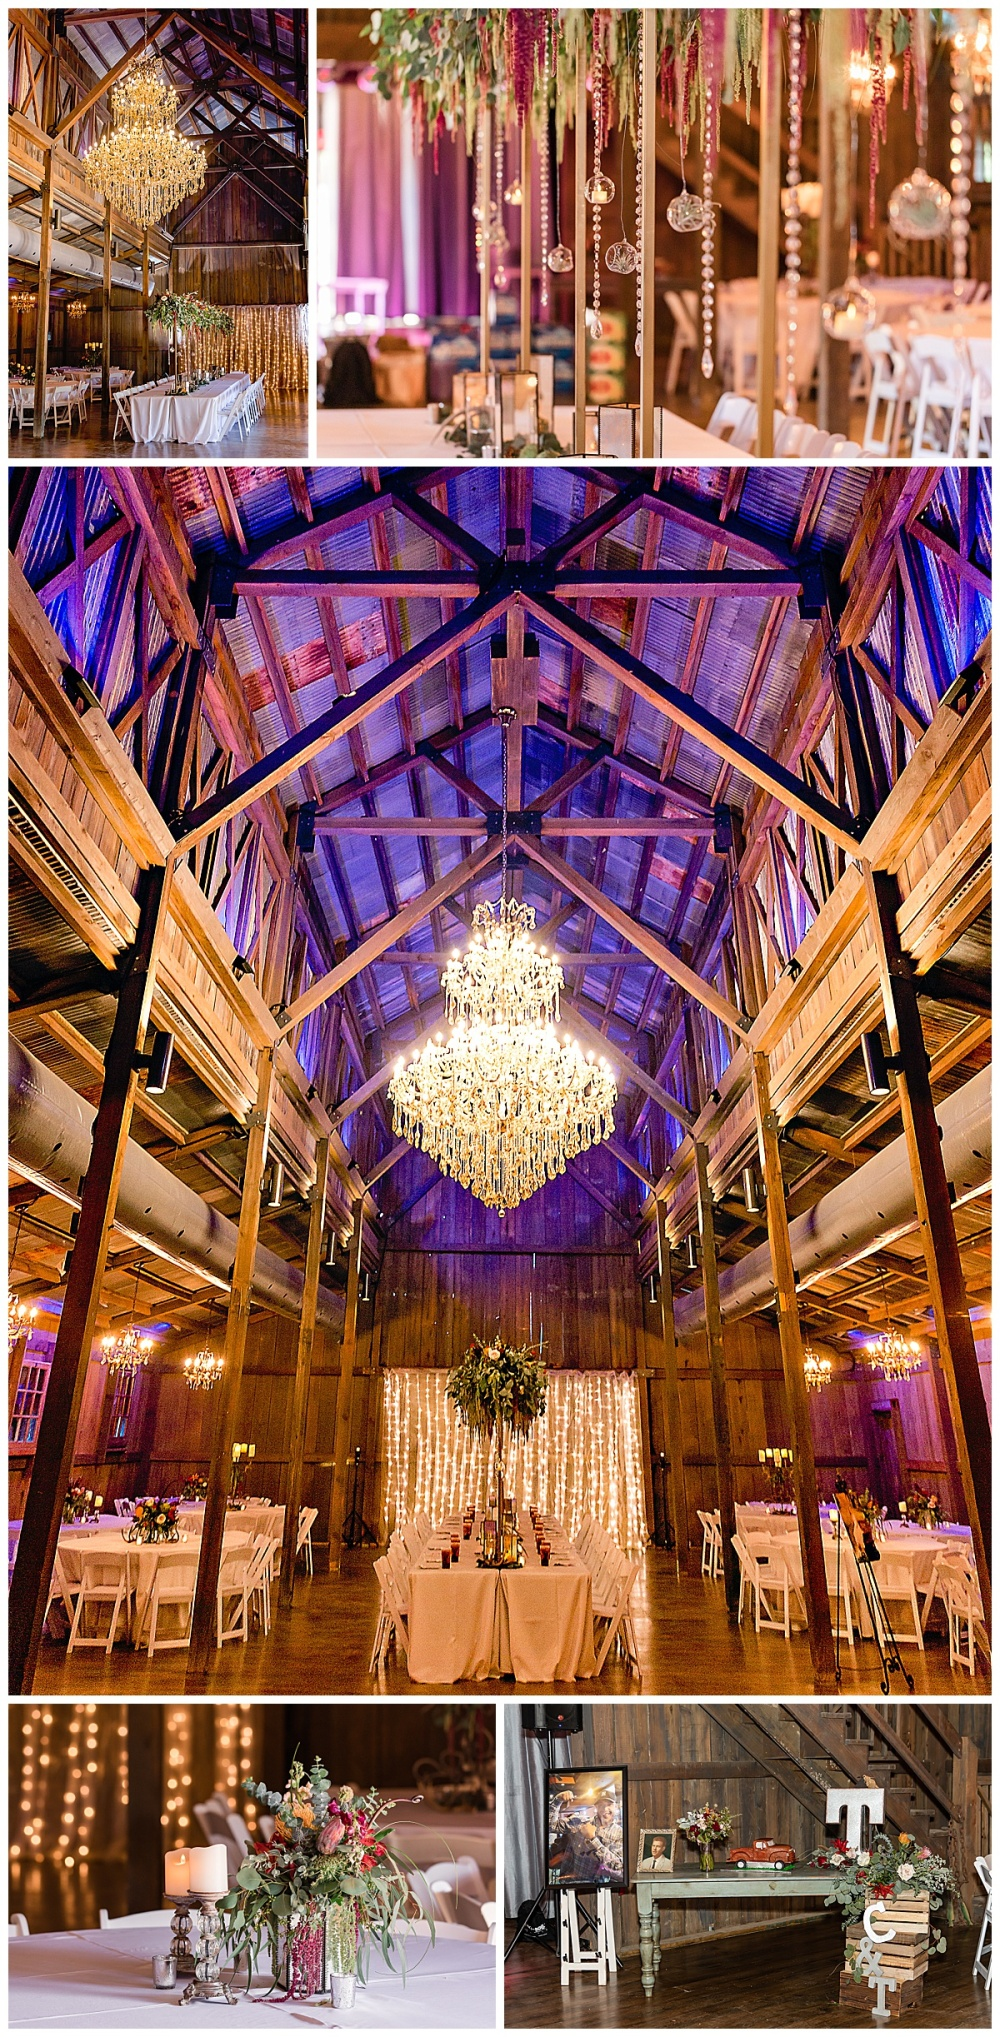 Eagle-Dancer-Ranch-Boerne-Texas-Wedding-Party-Barn-Carly-Barton-Photography_0008.jpg